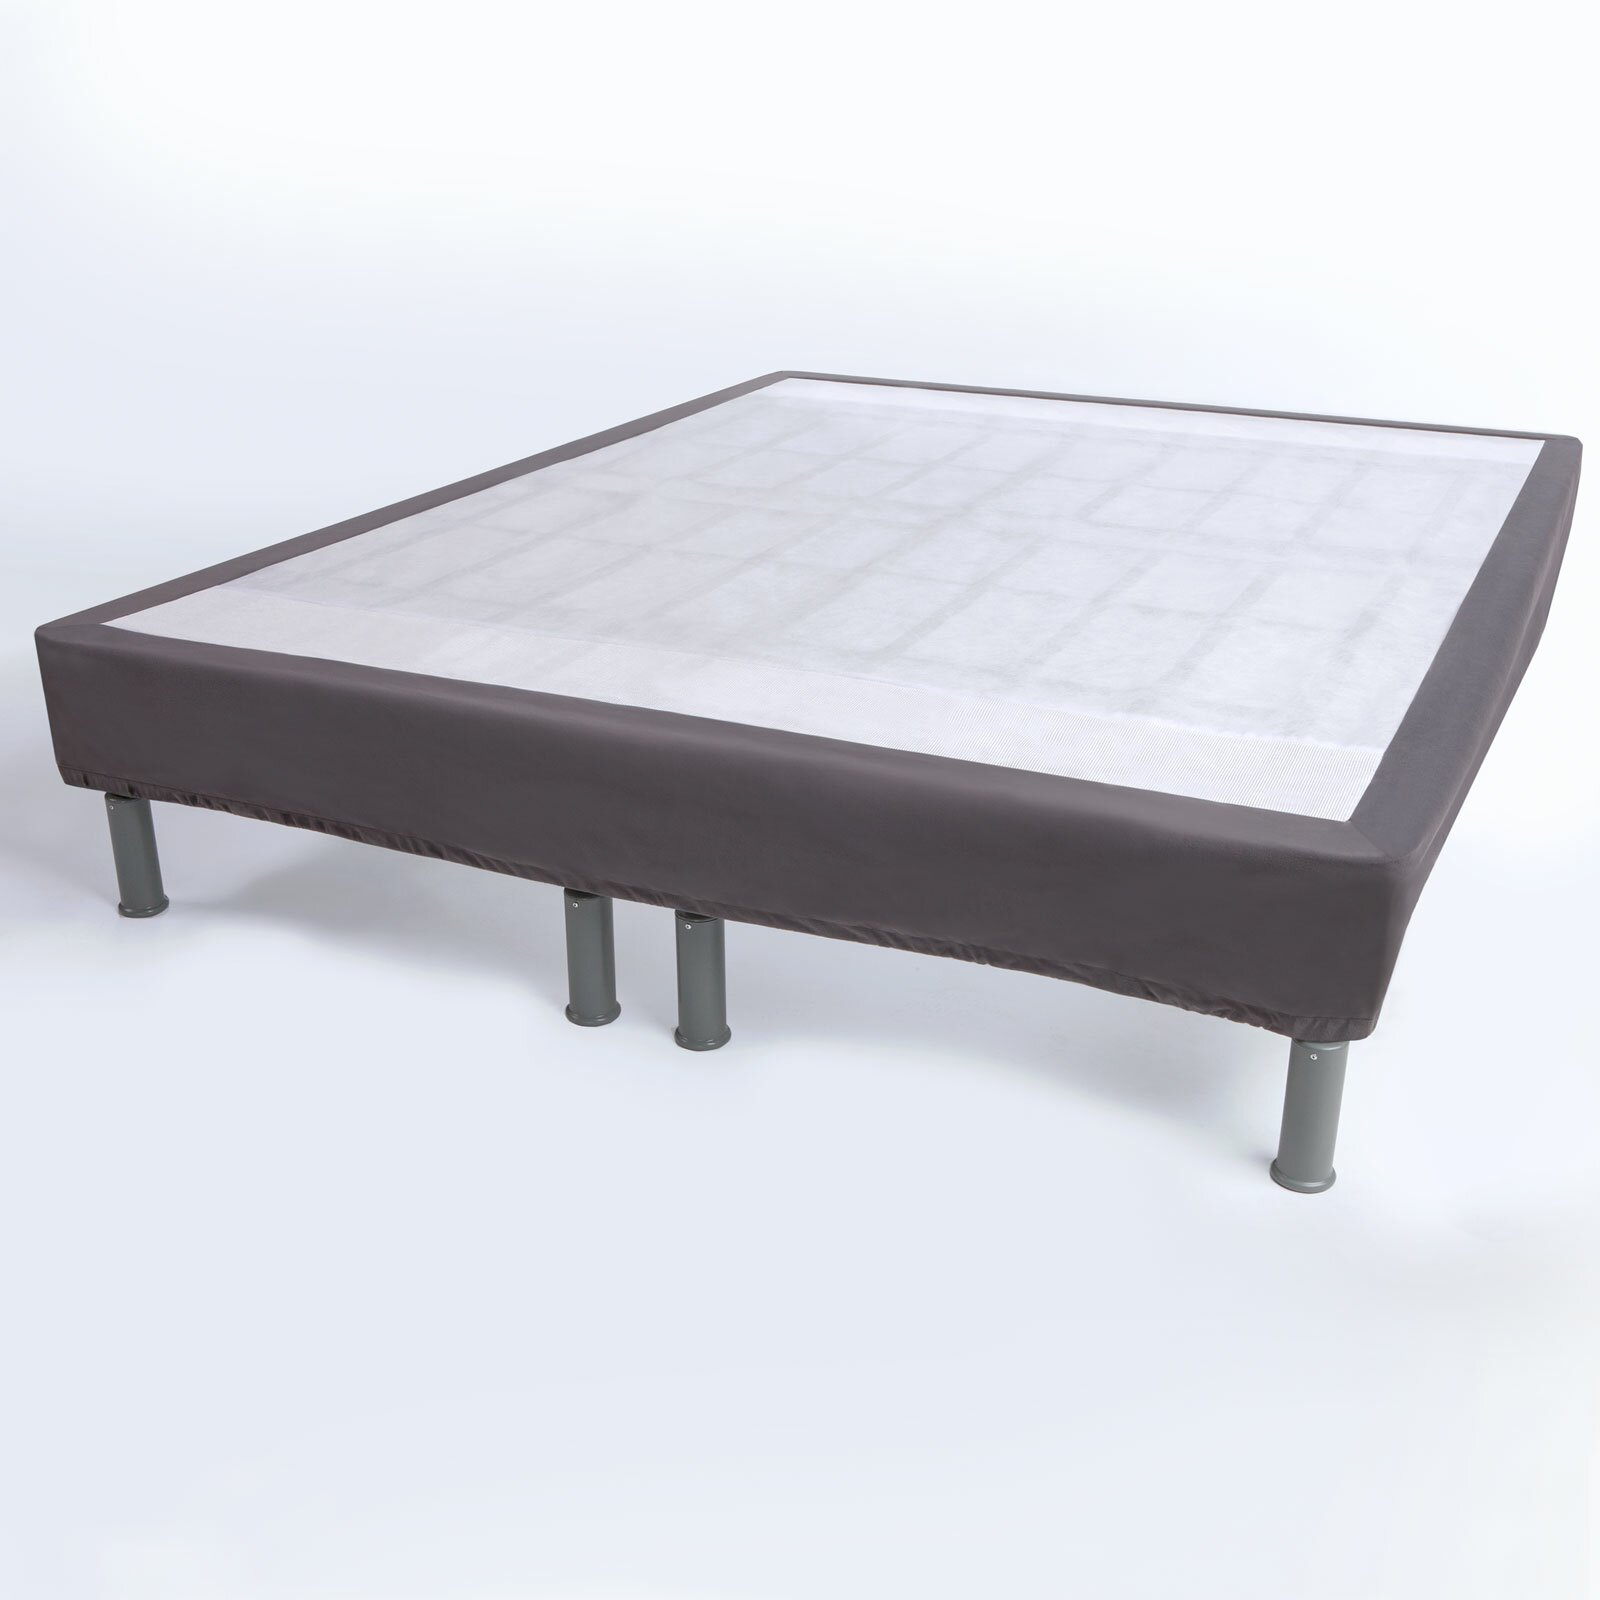 Comfort revolution premium steel mattress foundation for Comfort revolution mattress reviews